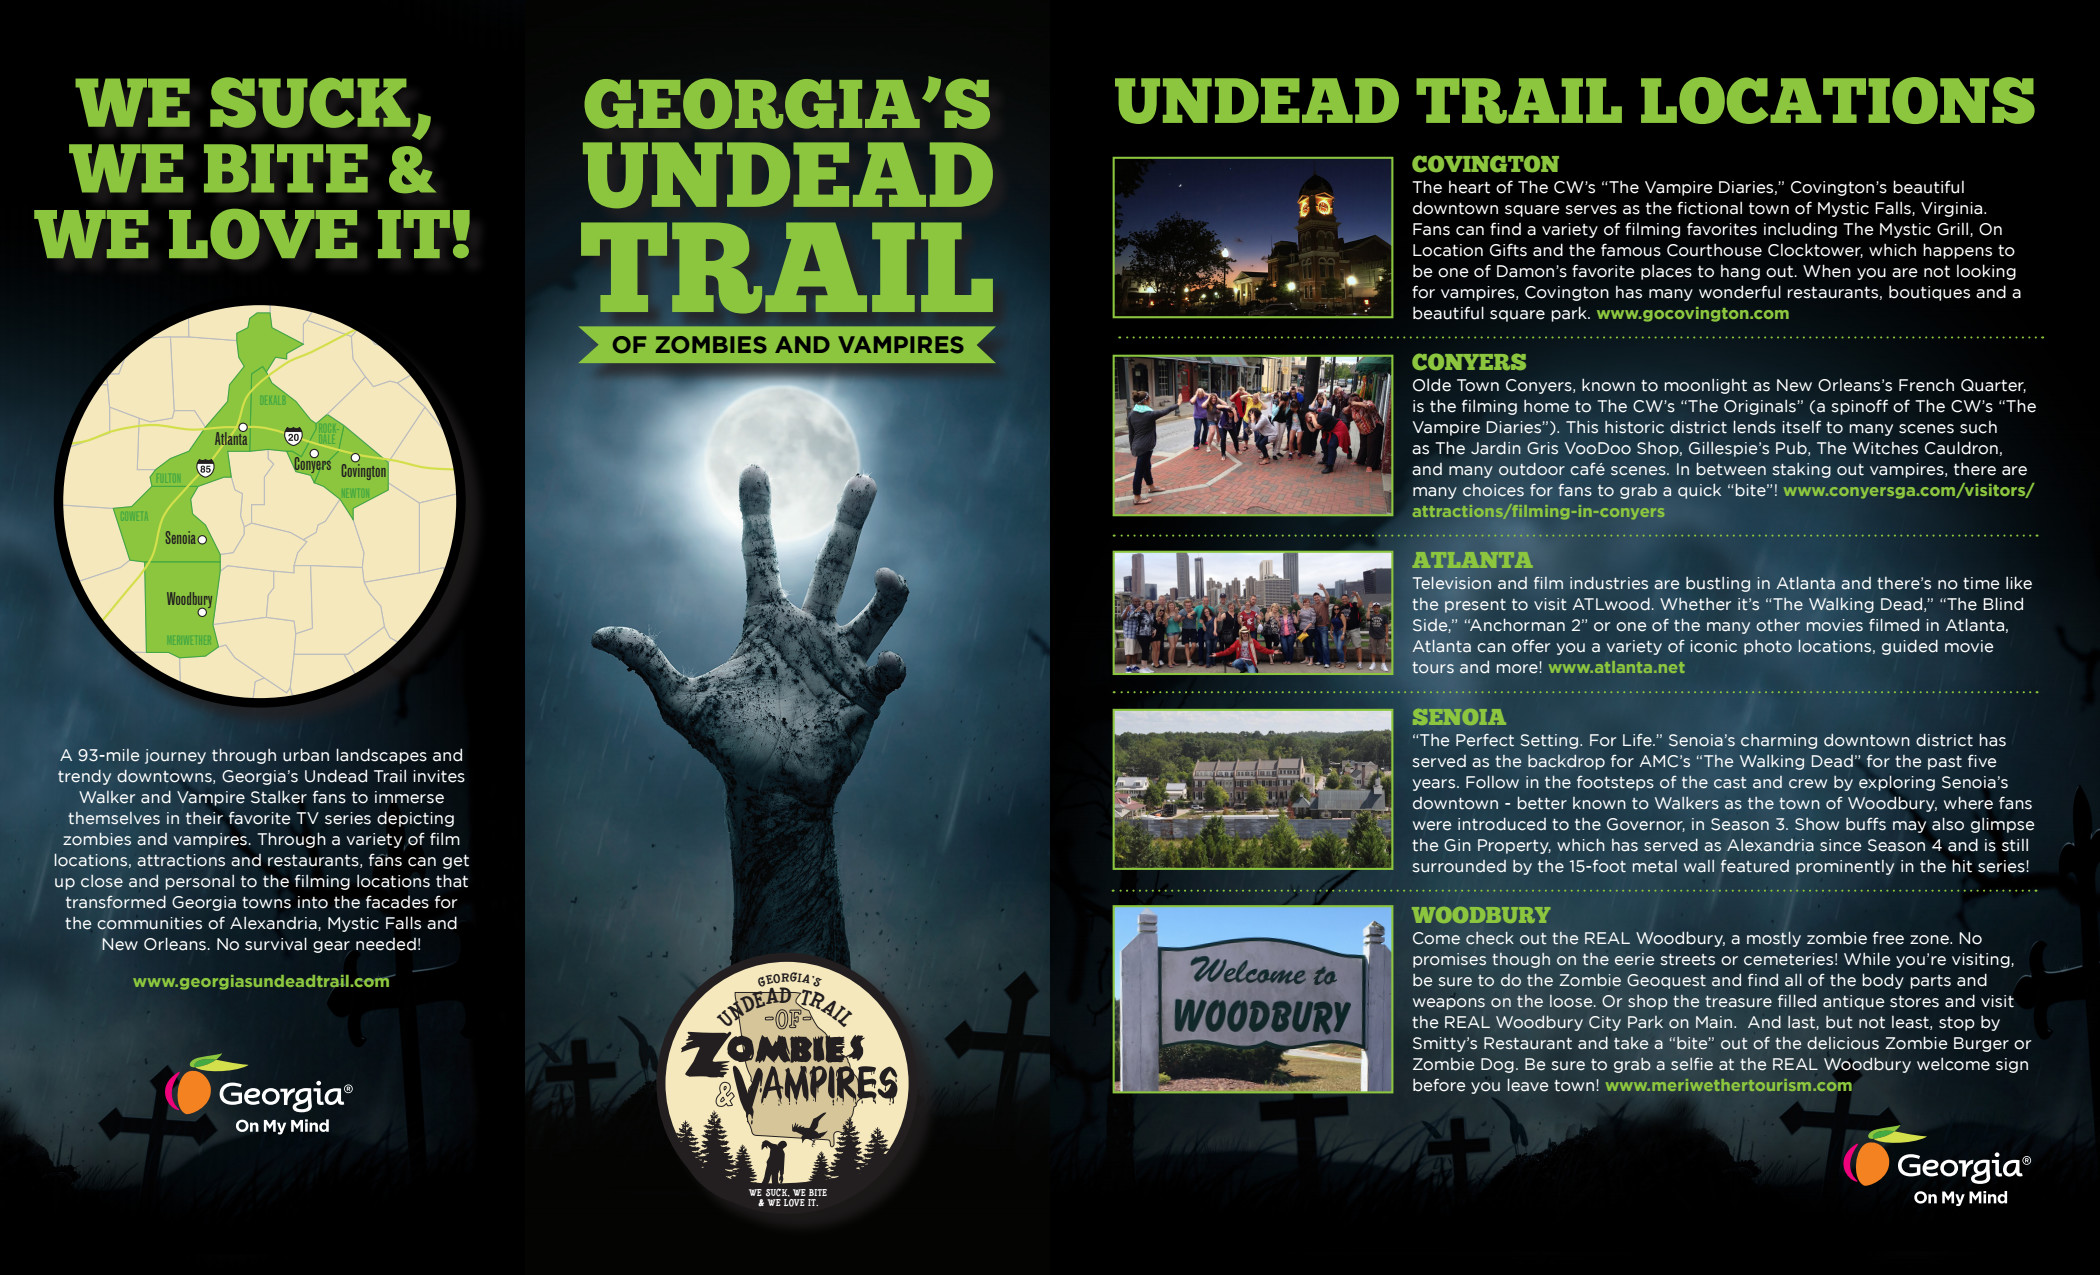 Georgia's Undead Trail of Zombies and Vampires